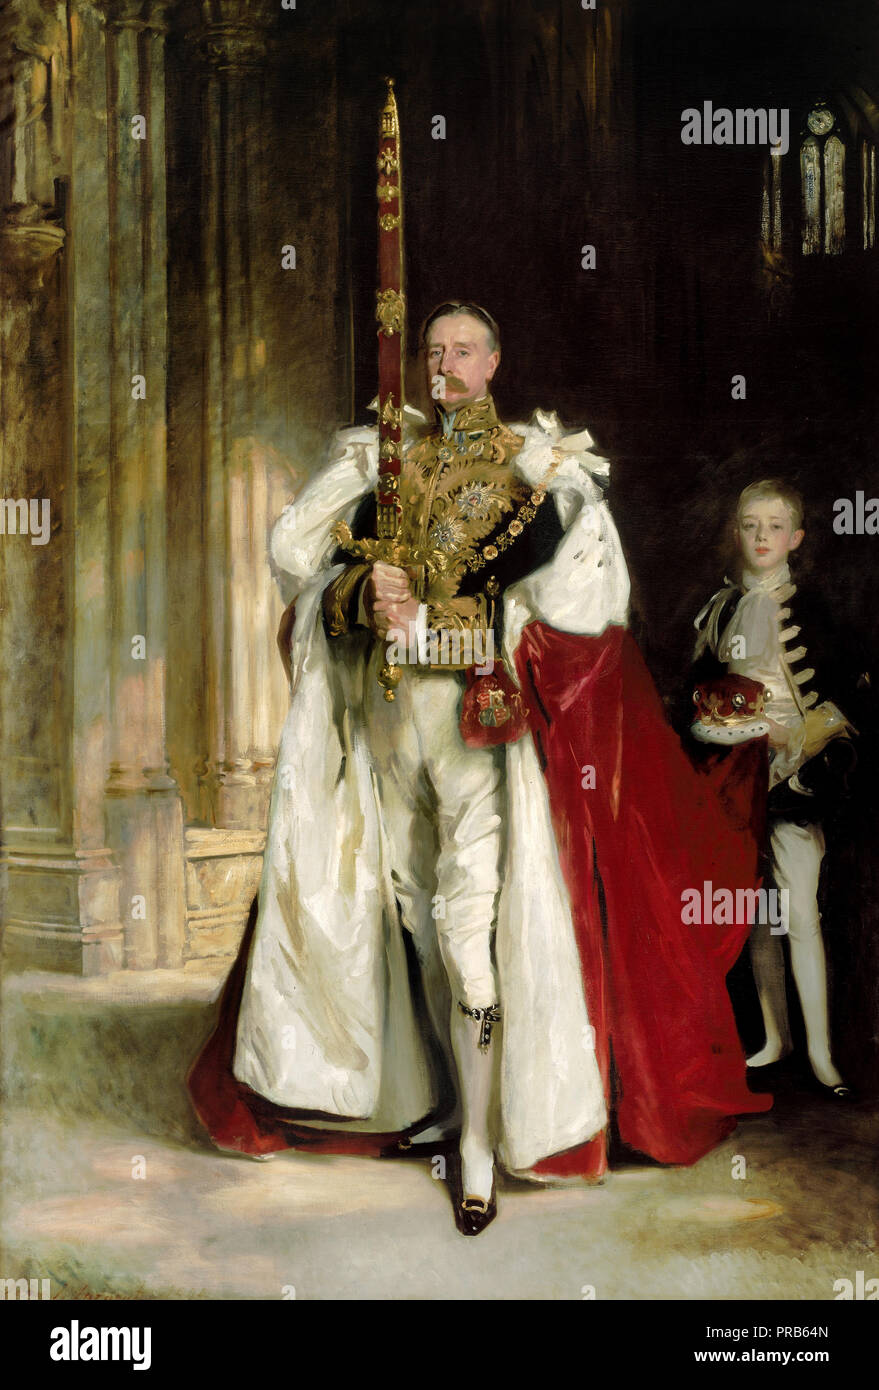 John Singer Sargent, Charles Stewart, Sixth Marquess of Londonderry, Carrying the Great Sword of State at the Coronation of King Edward VII. - Stock Image